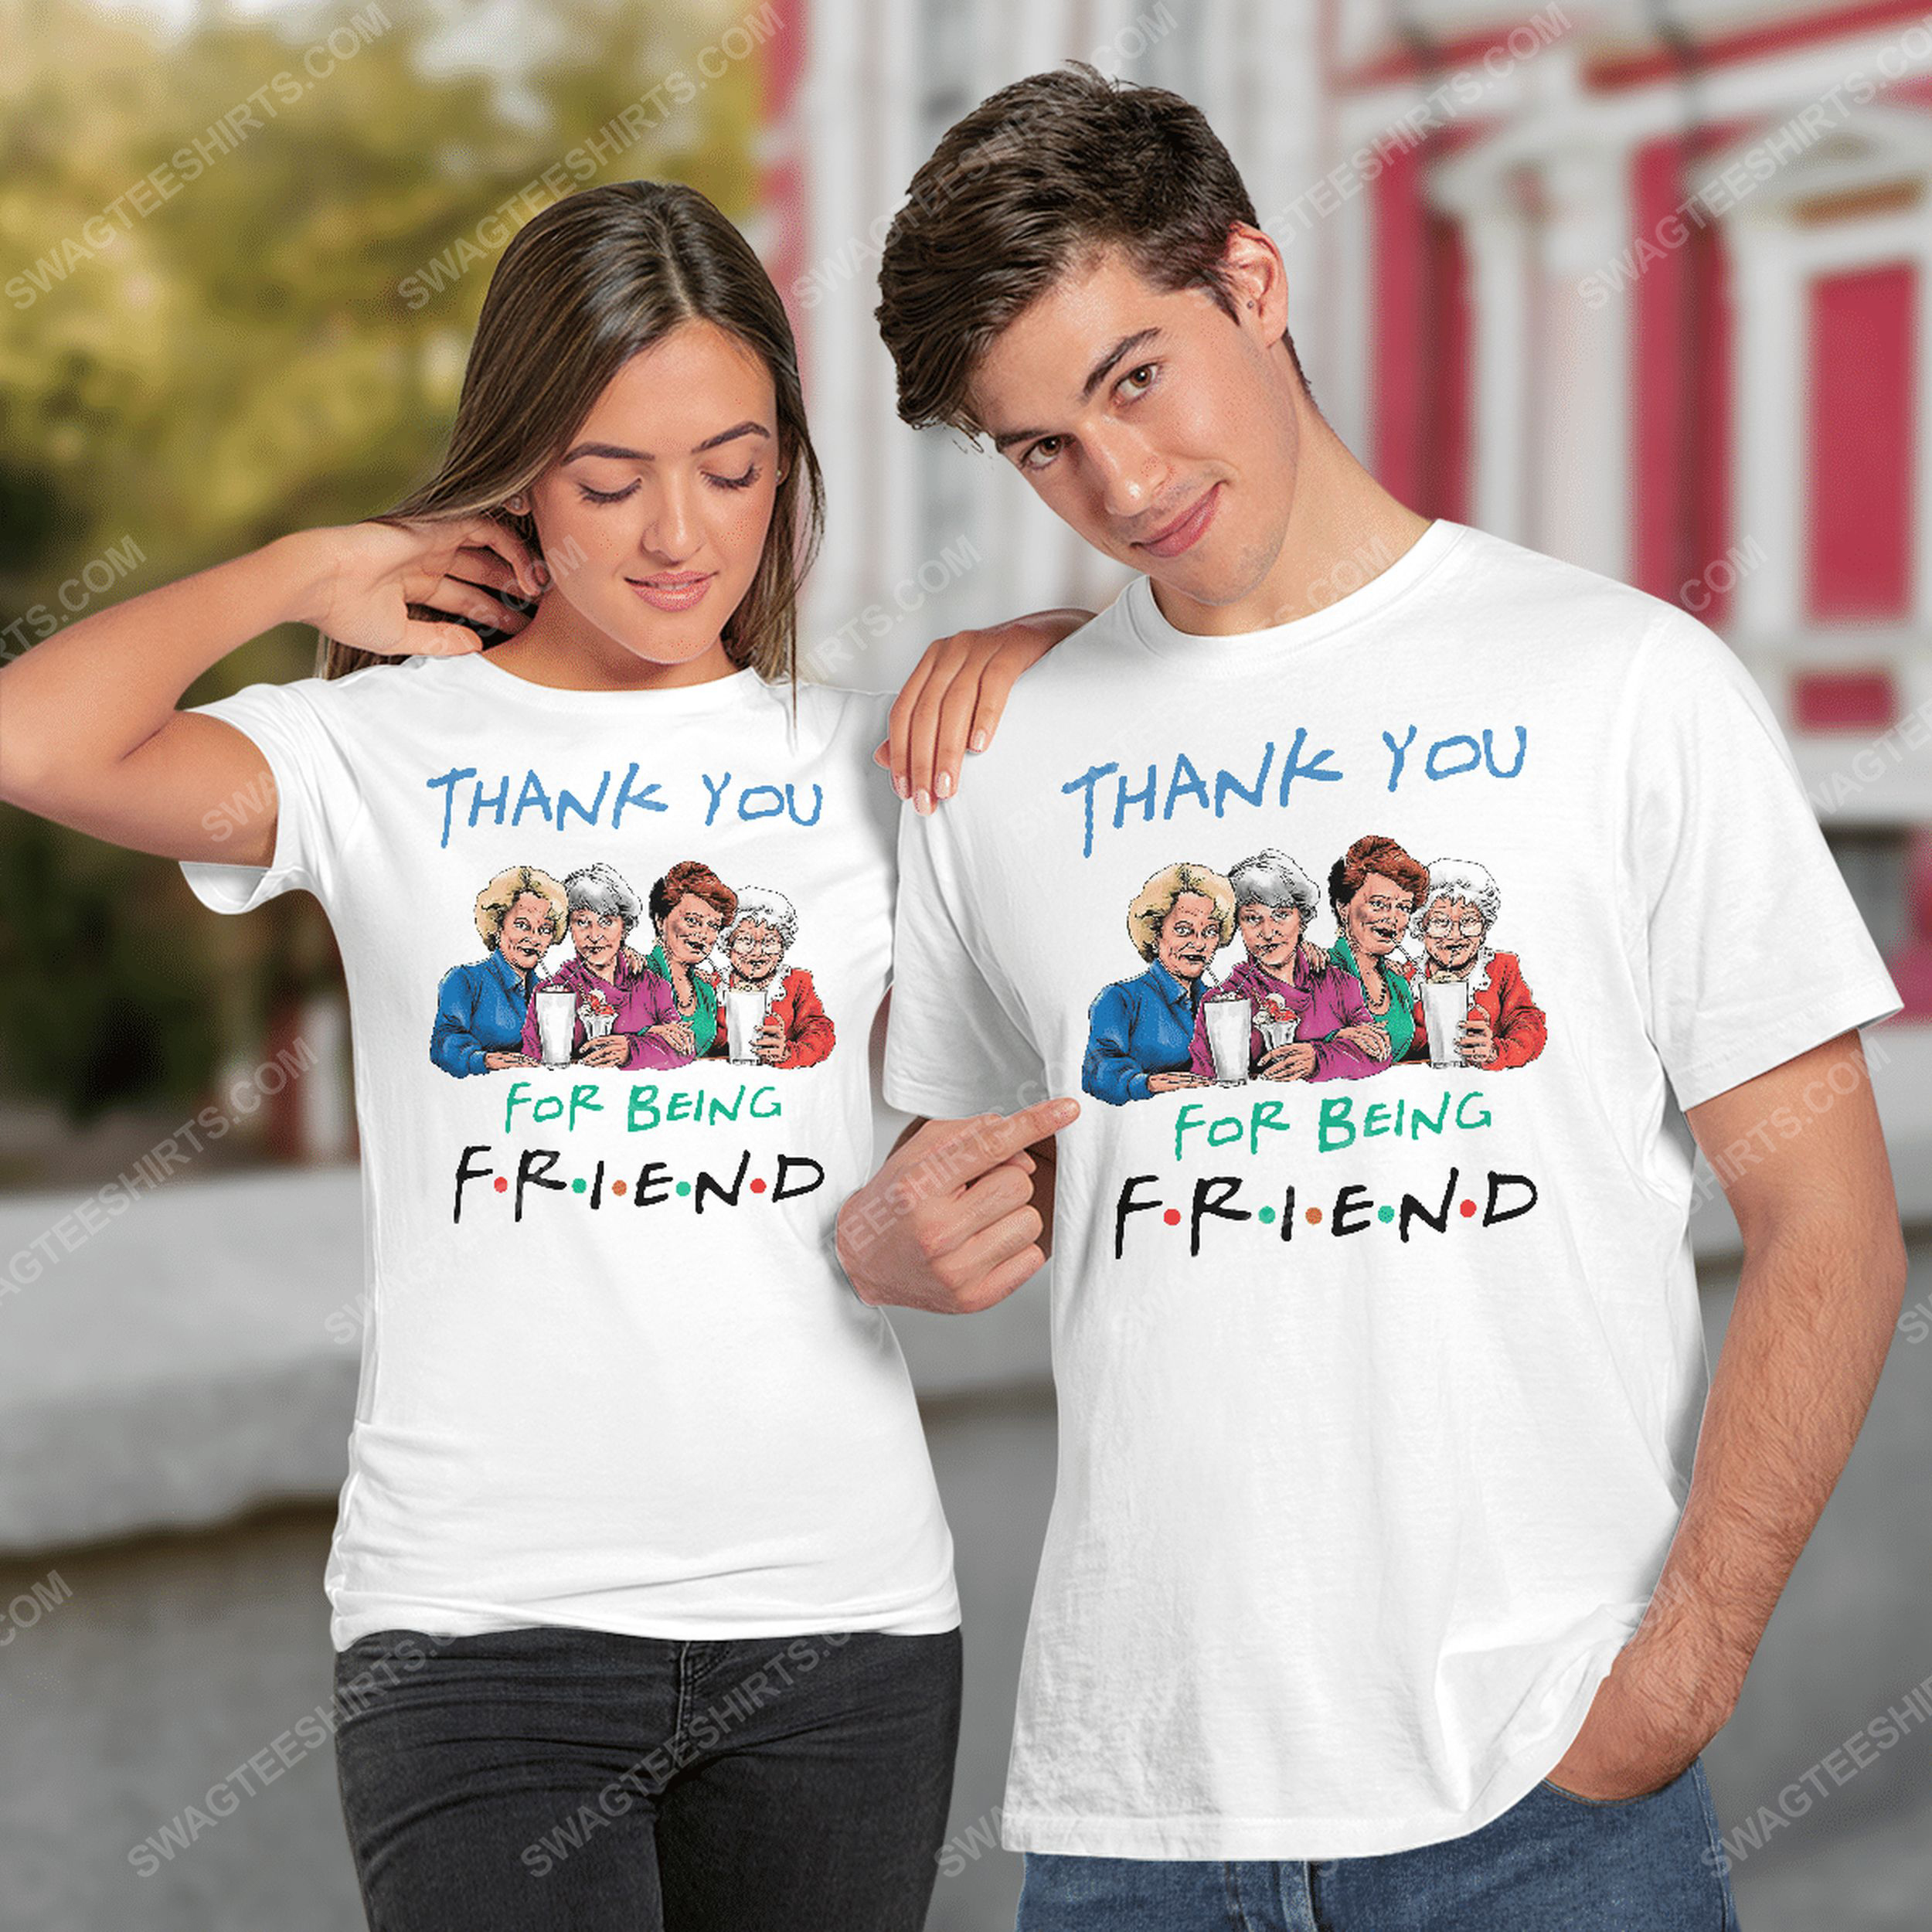 Friends tv show thank you for being friend the golden girls tshirt(1)